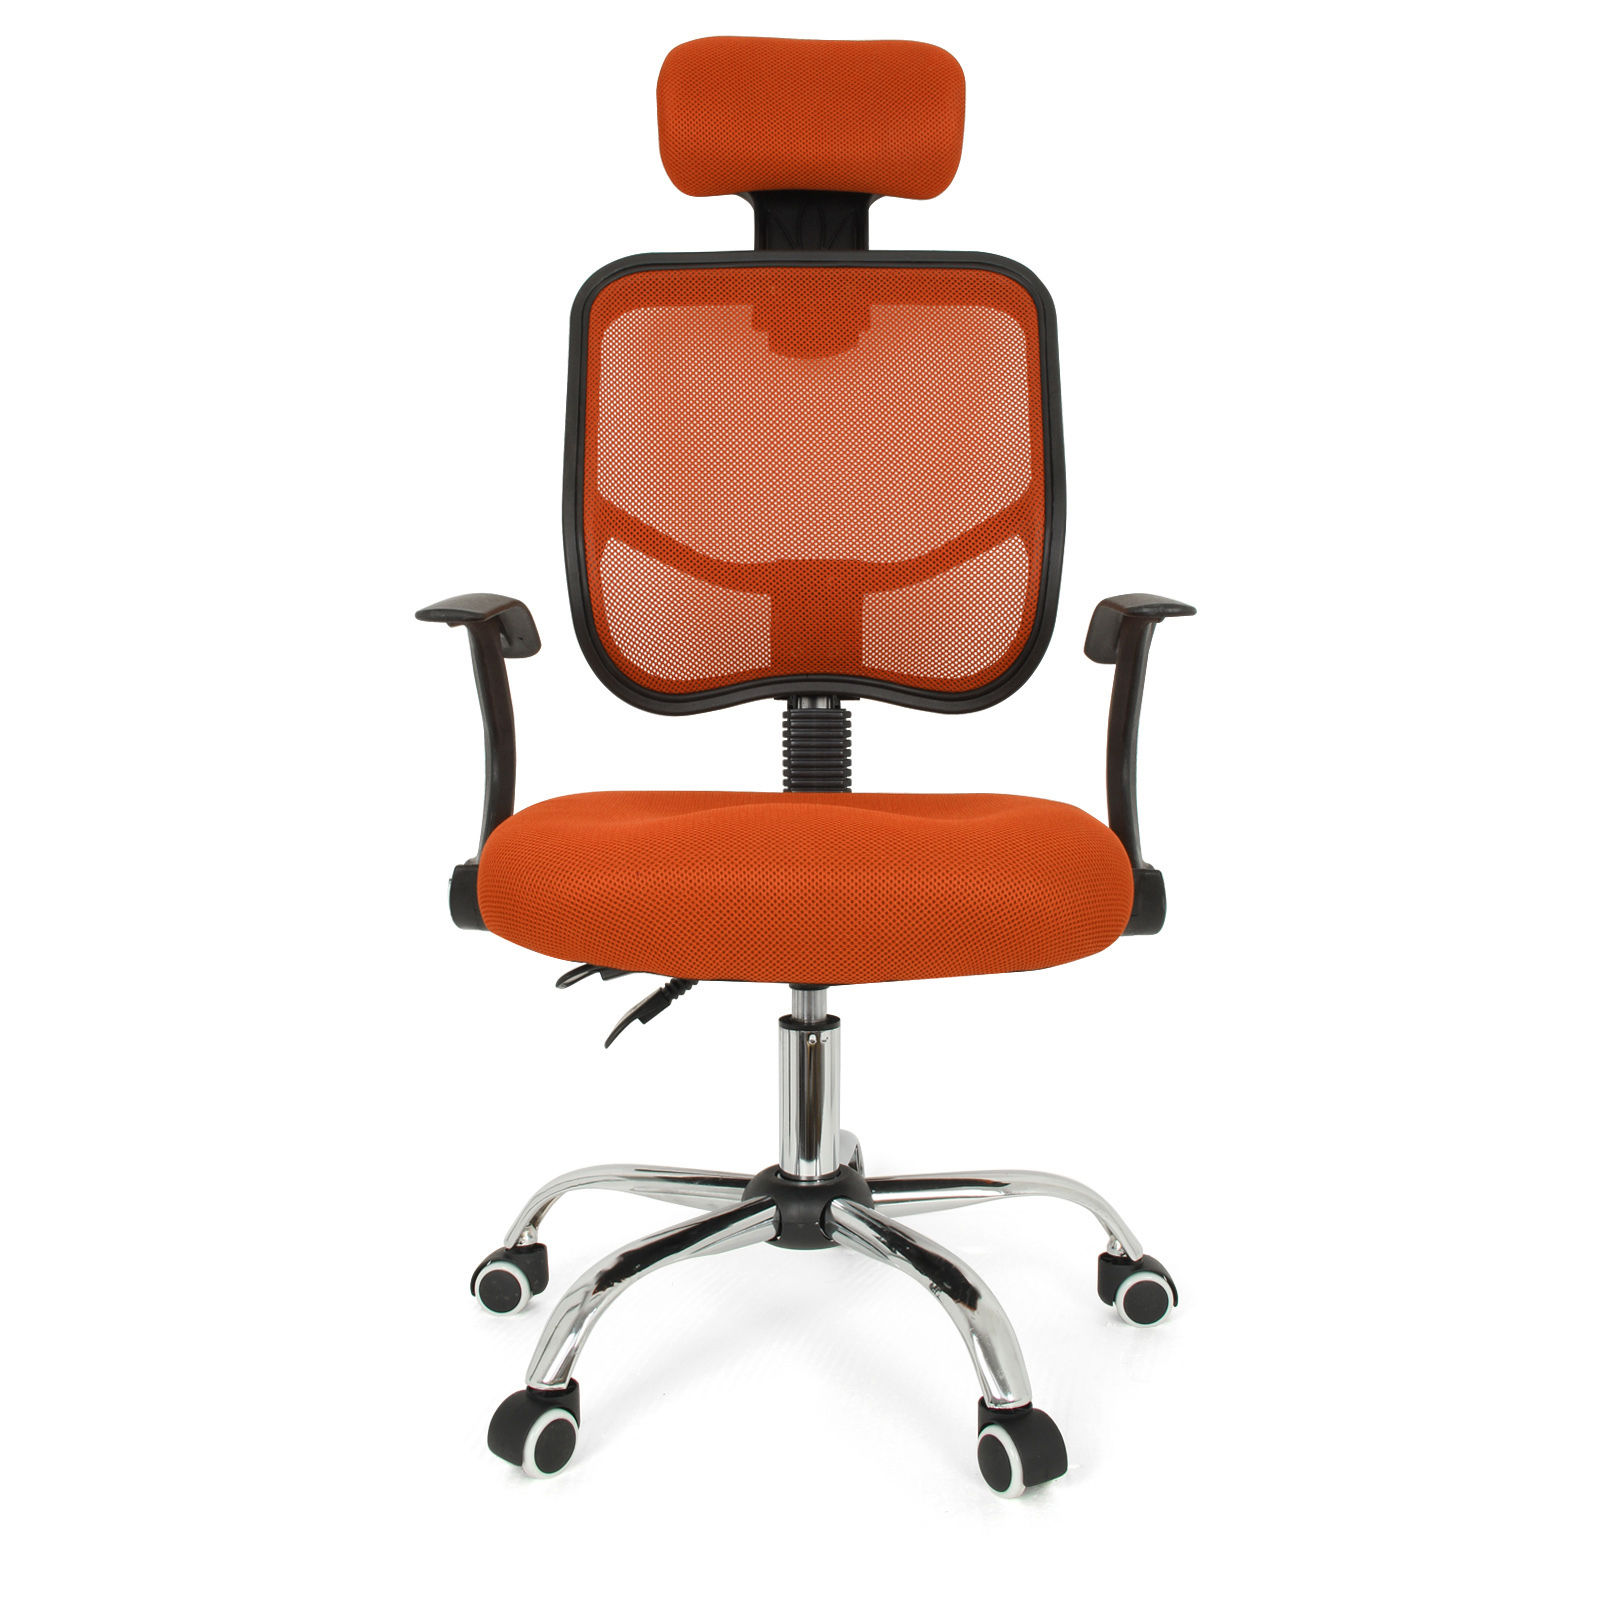 Red Desk Chair Us 122 23 Nocm Seat Height Adjustment Office Computer Desk Chair Chrome Mesh Seat Ventilate Colour Red In Office Chairs From Furniture On